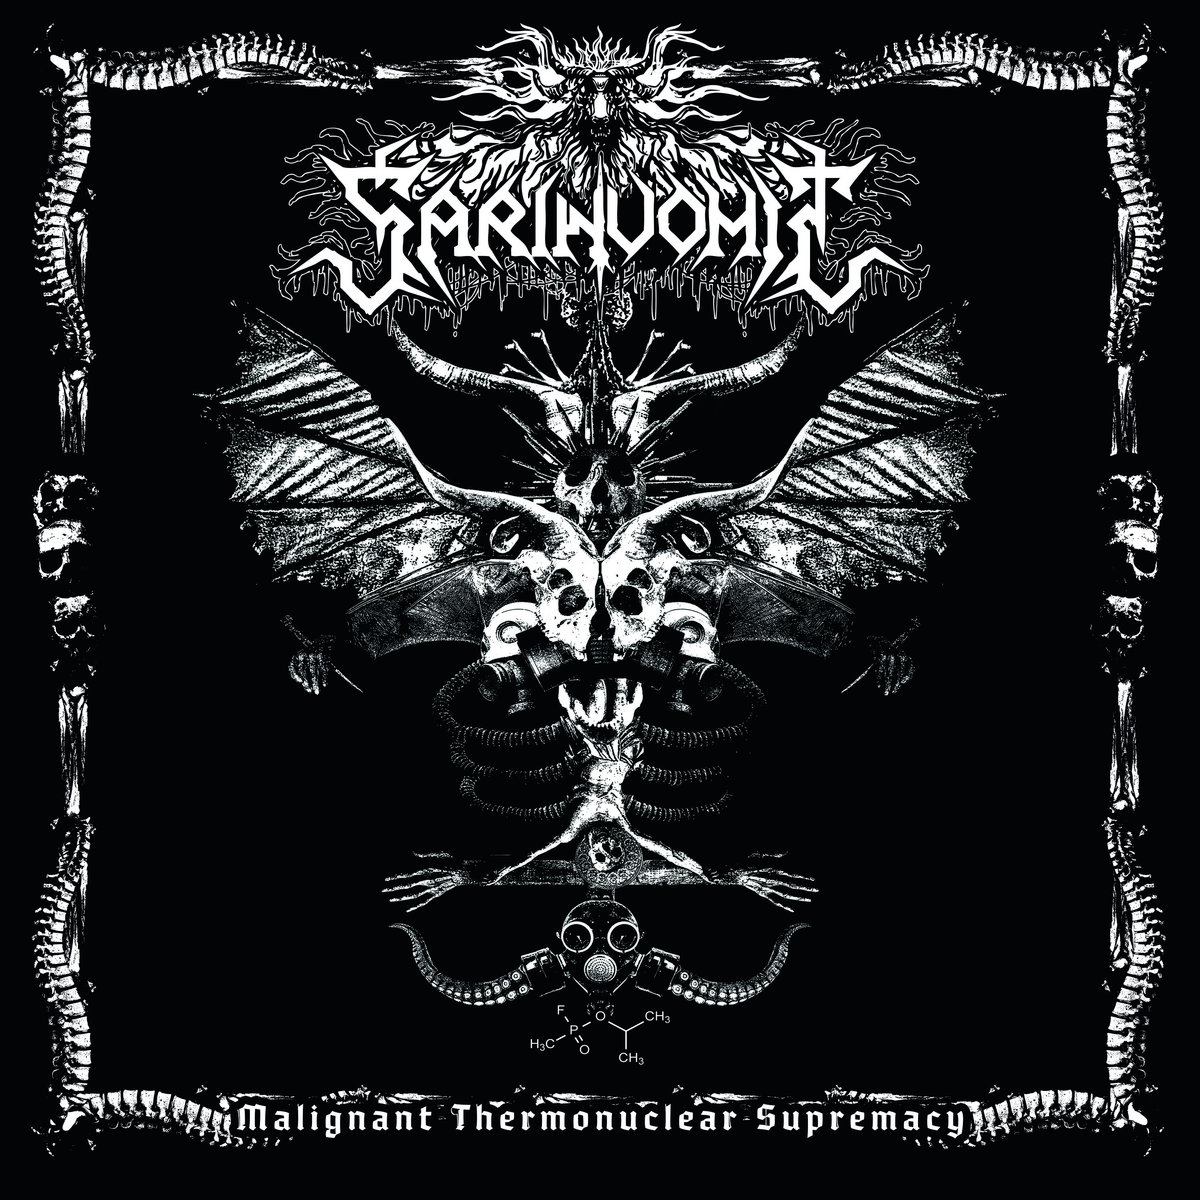 Malignant Thermonuclear Supremacy | Sarinvomit